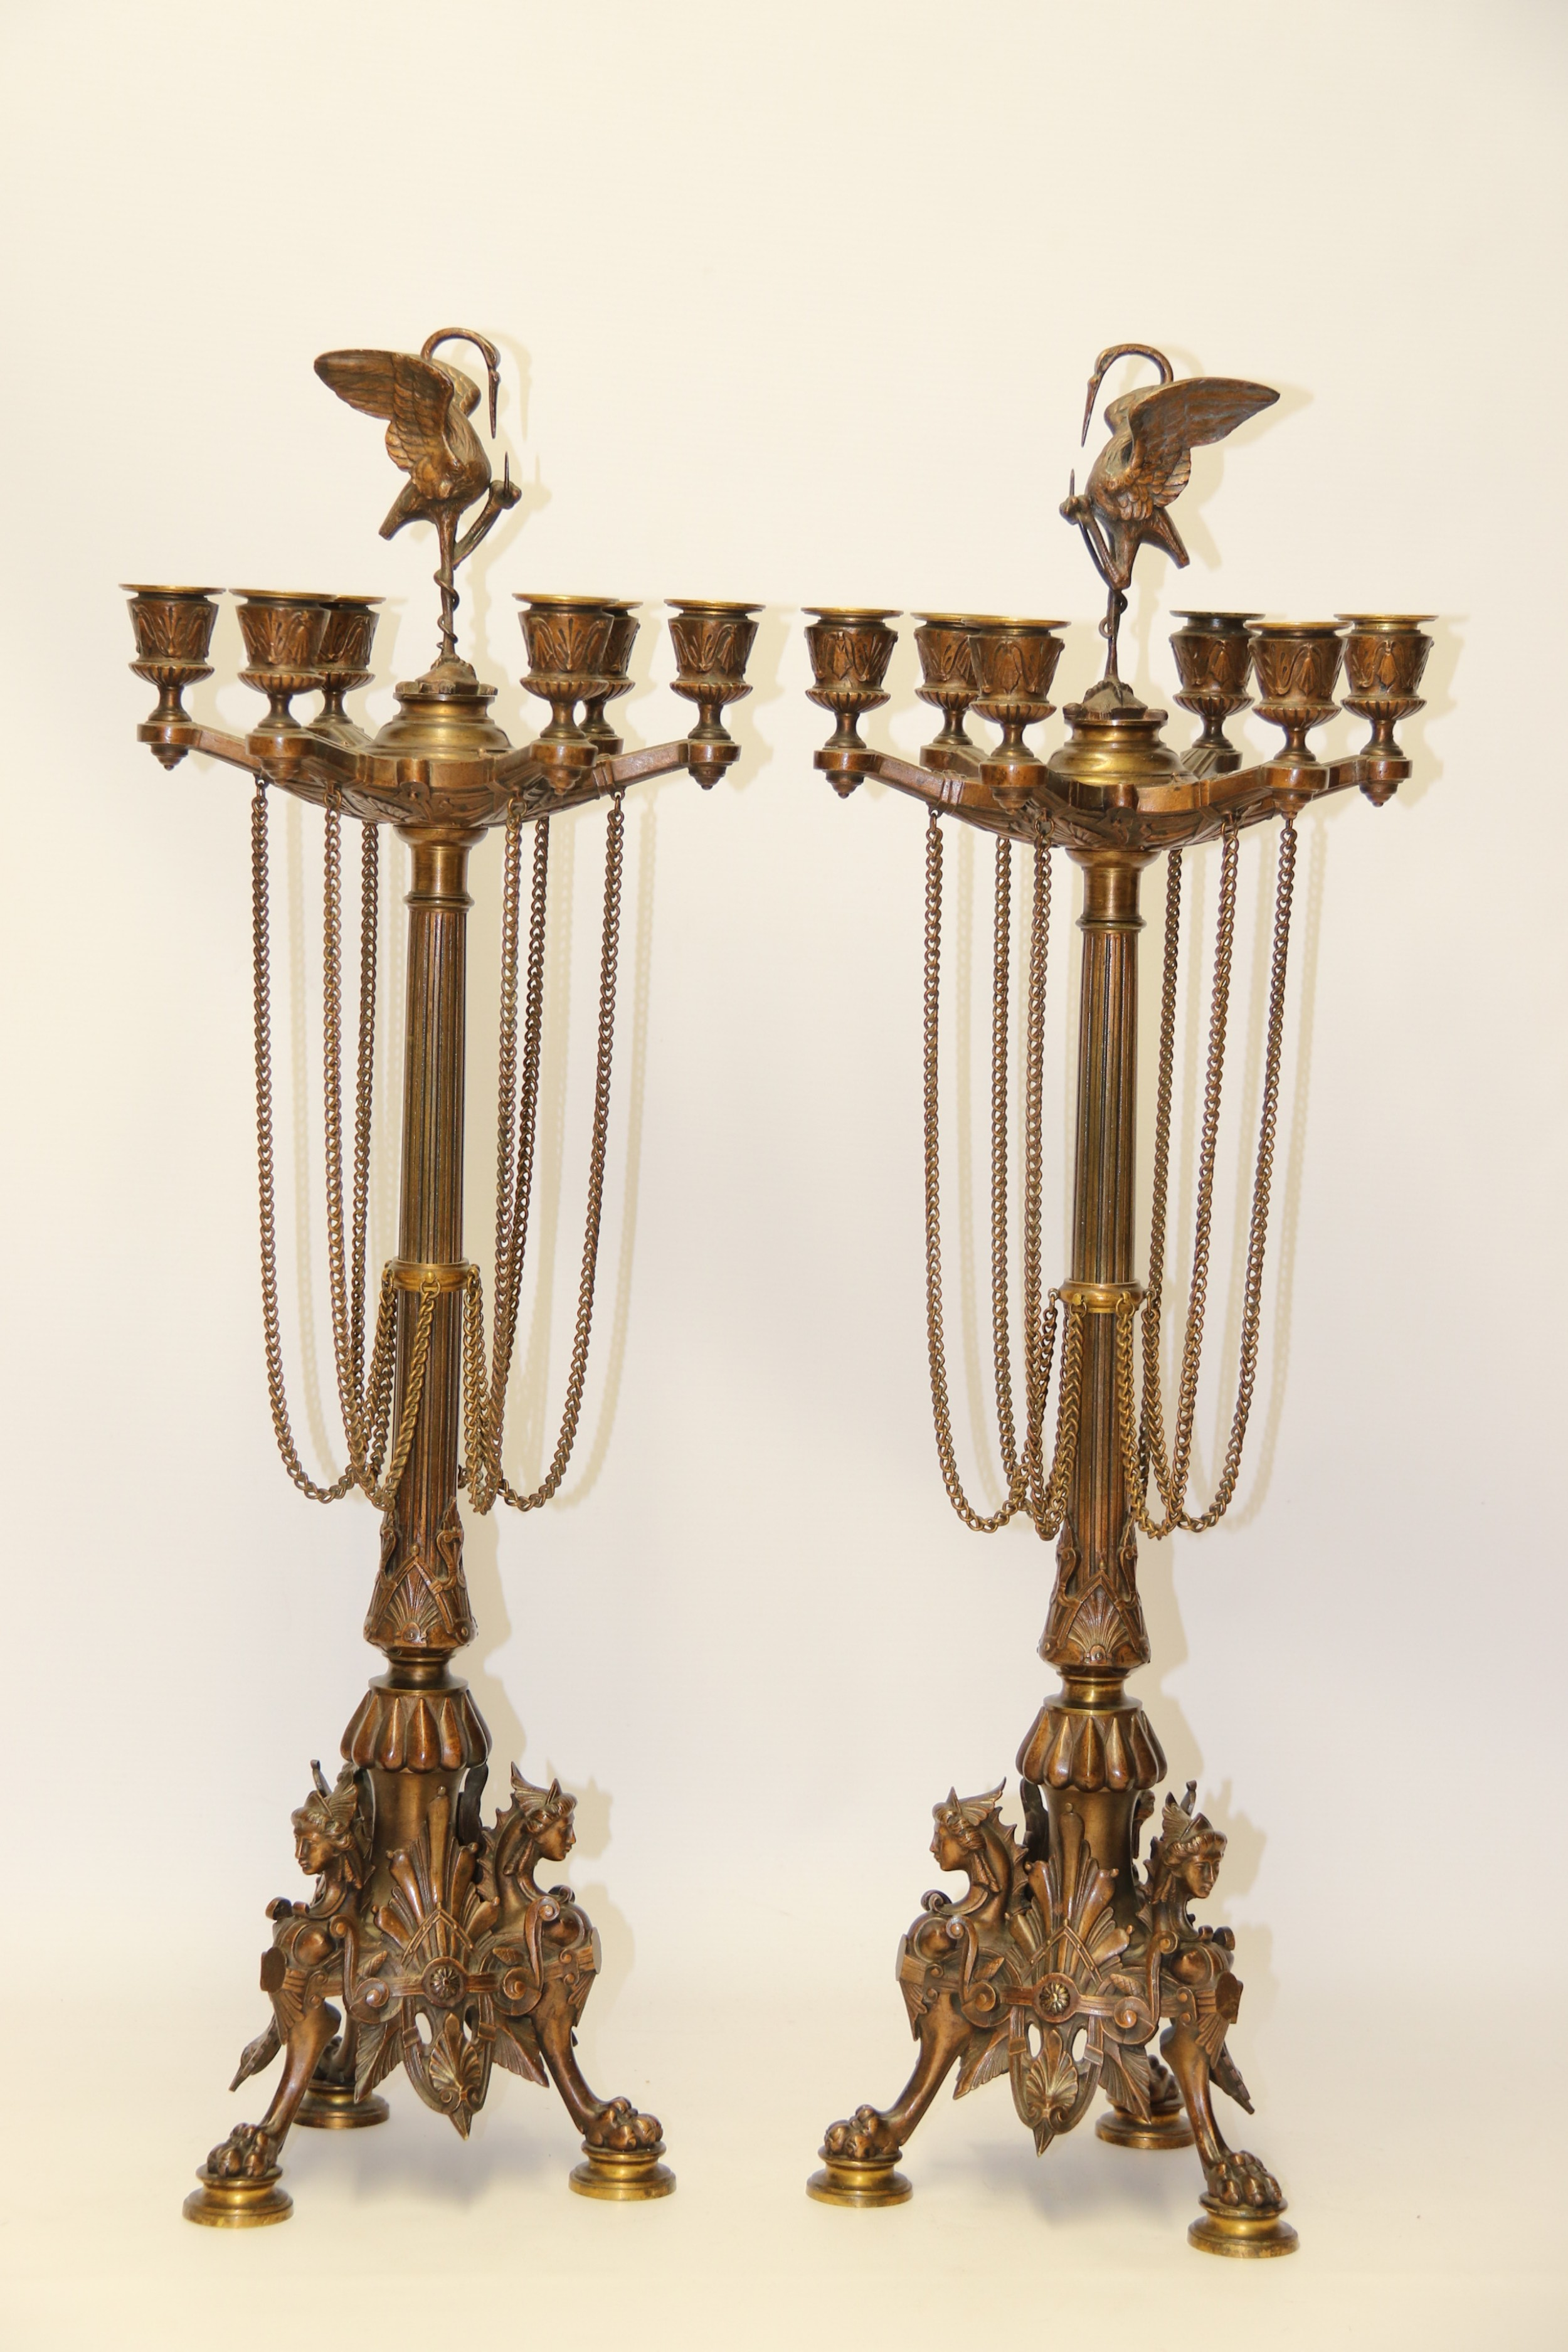 a superb pair of mid 19th century french bronze candelabra